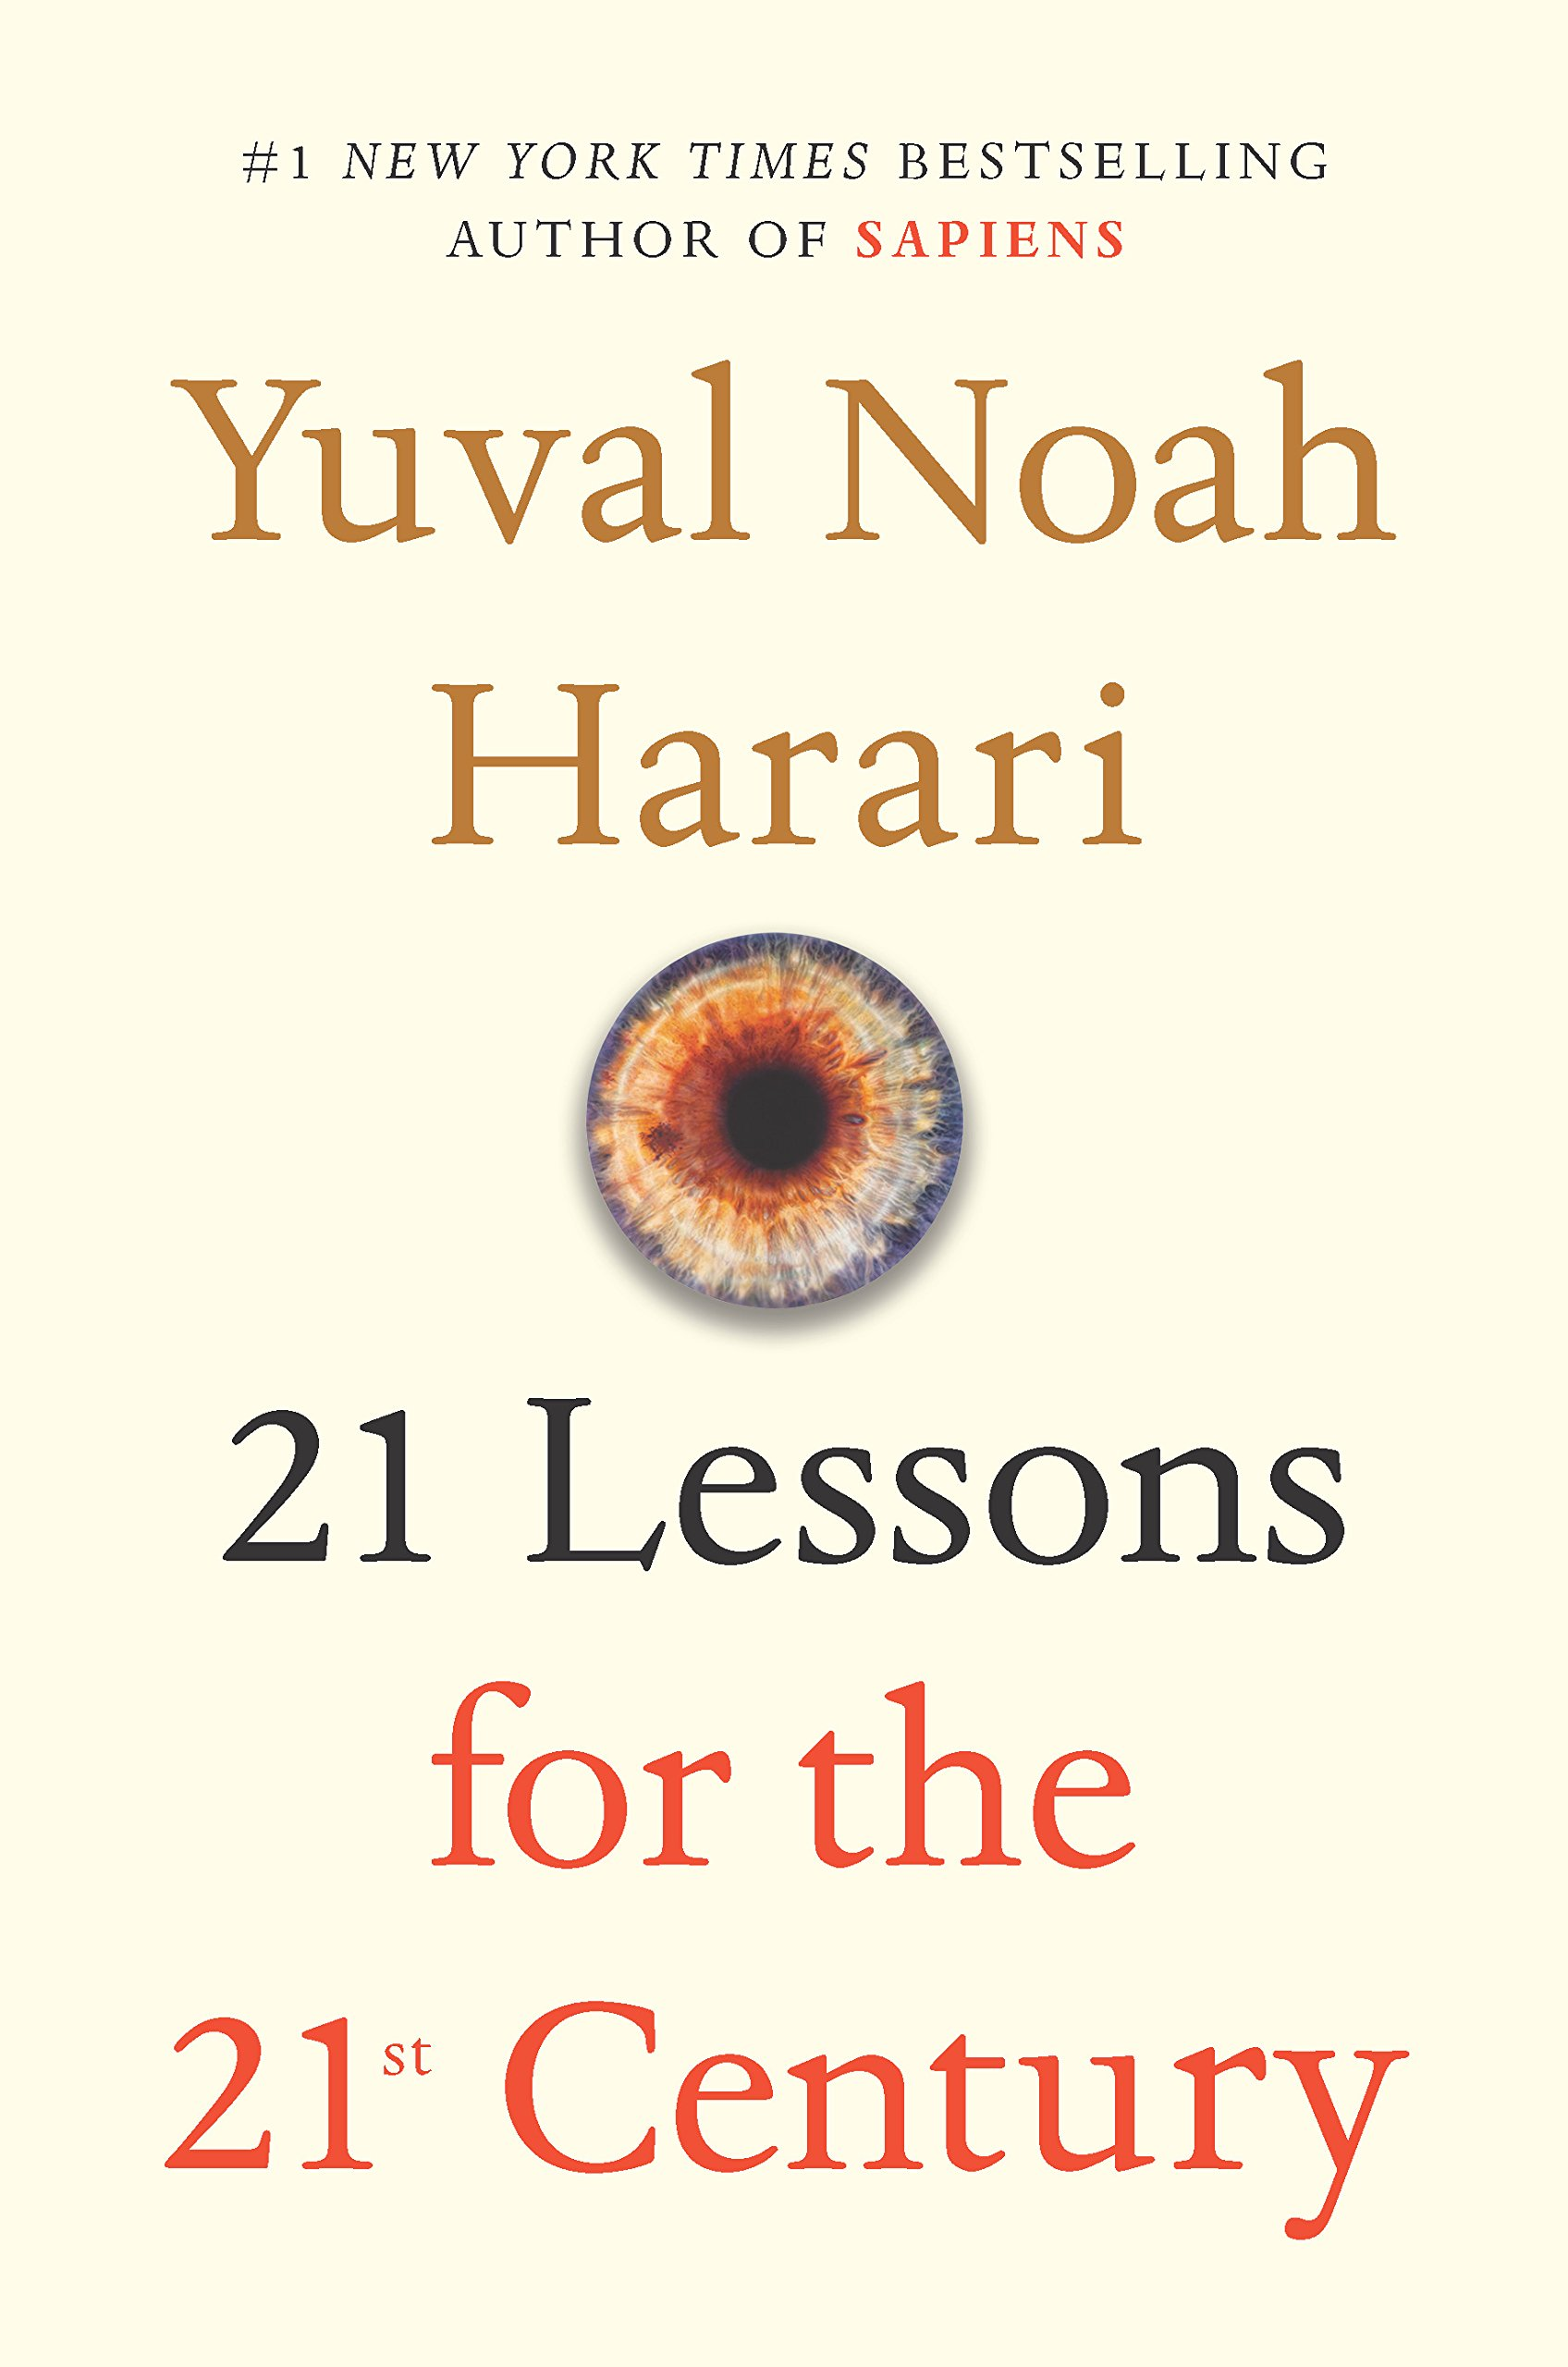 e98586474fa2 21 Lessons for the 21st Century  Yuval Noah Harari  9780525512172 ...